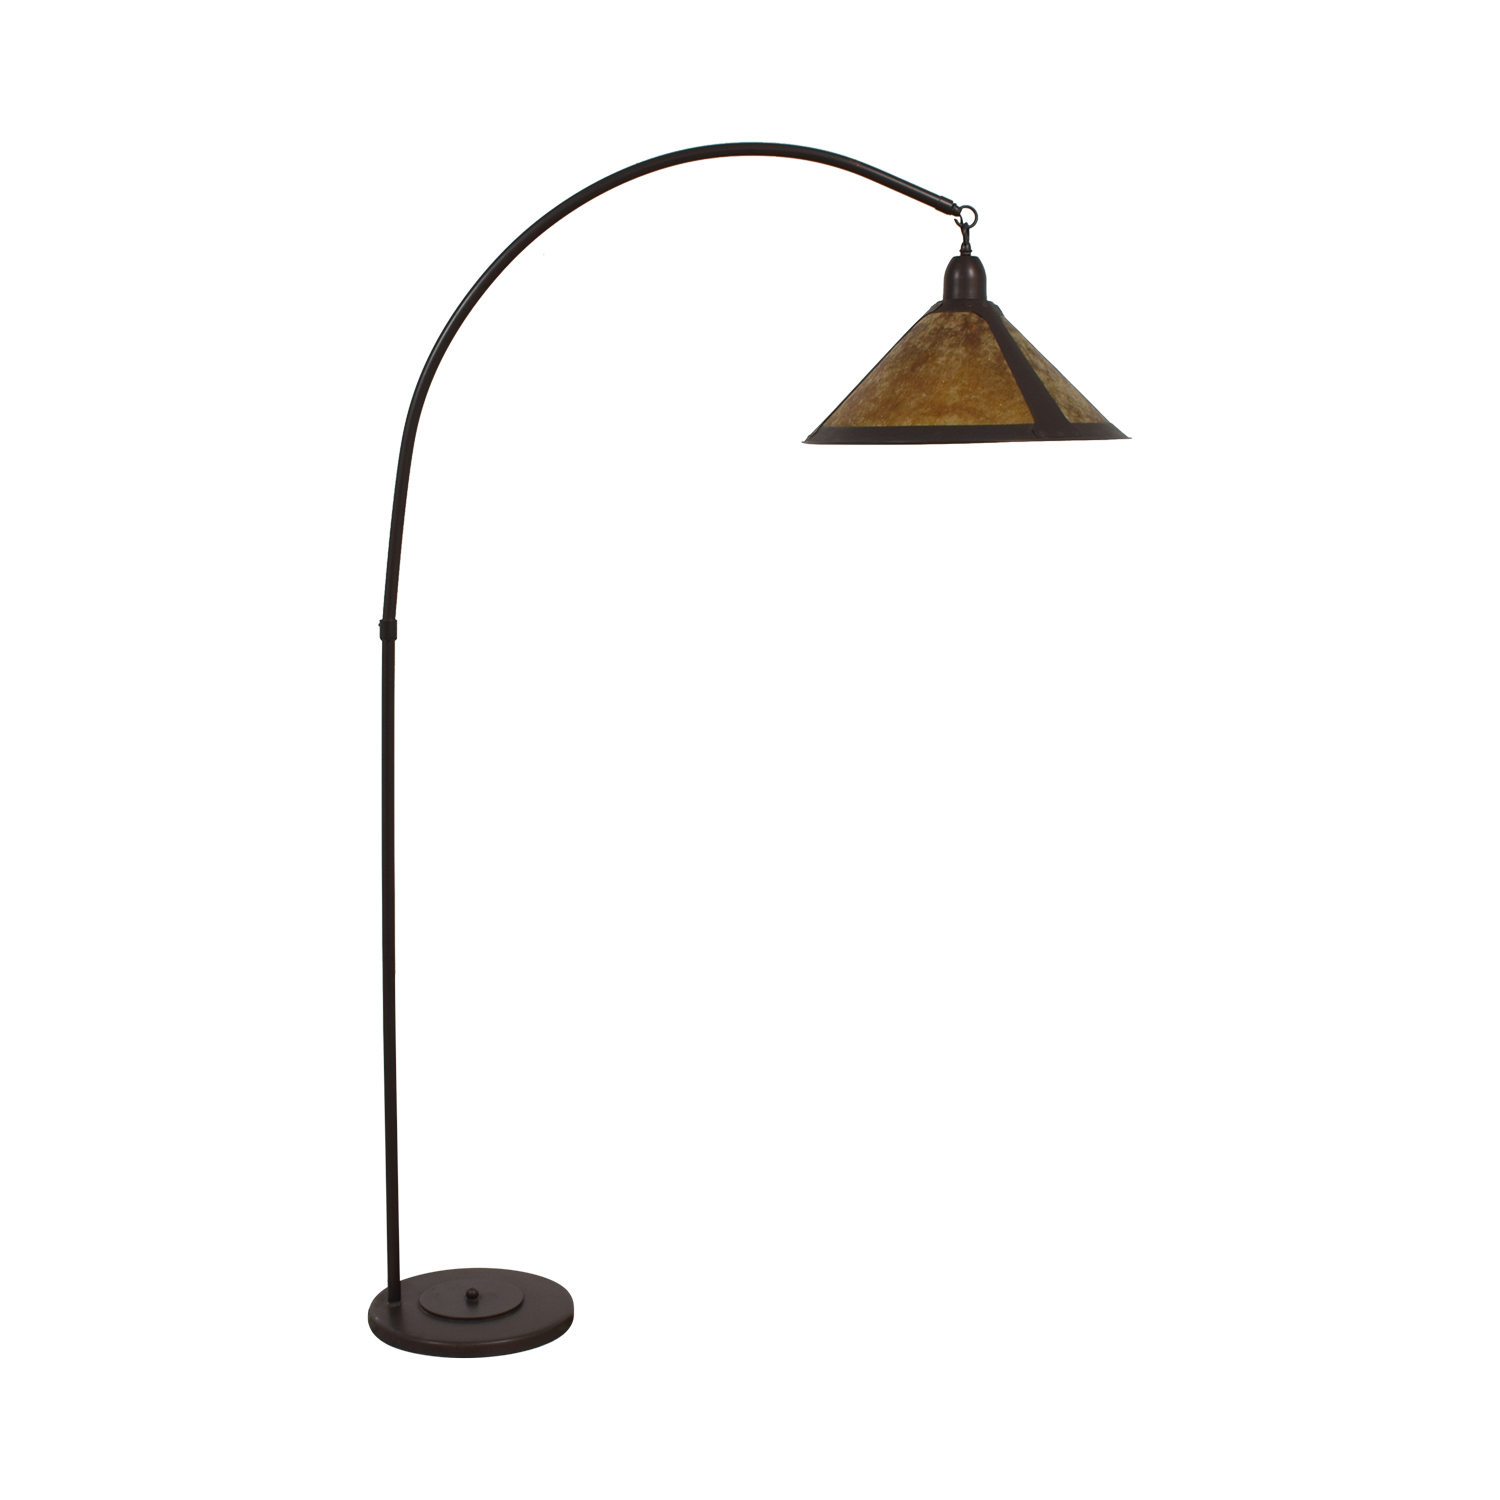 shop Mission Style Arc Floor Lamp Pottery Barn Decor